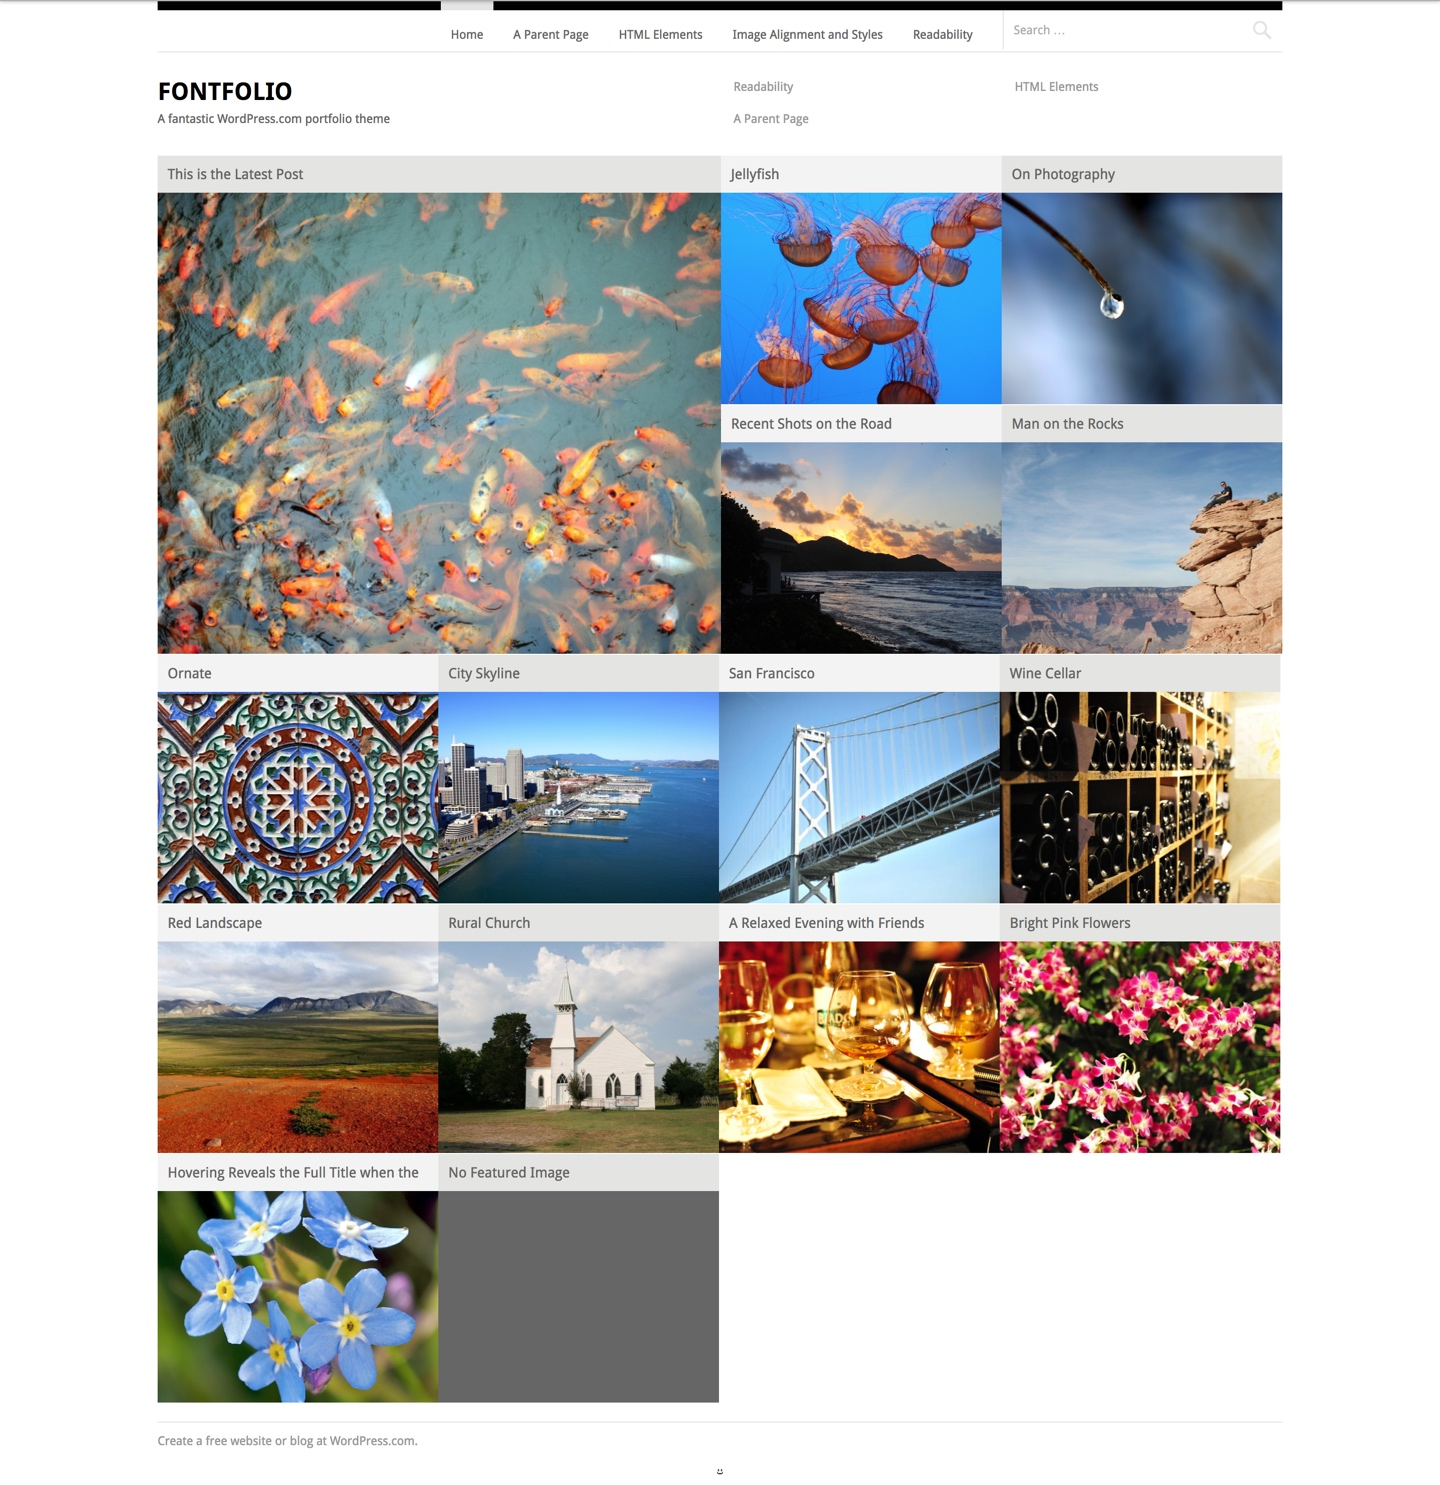 Fontfolio WordPress Theme